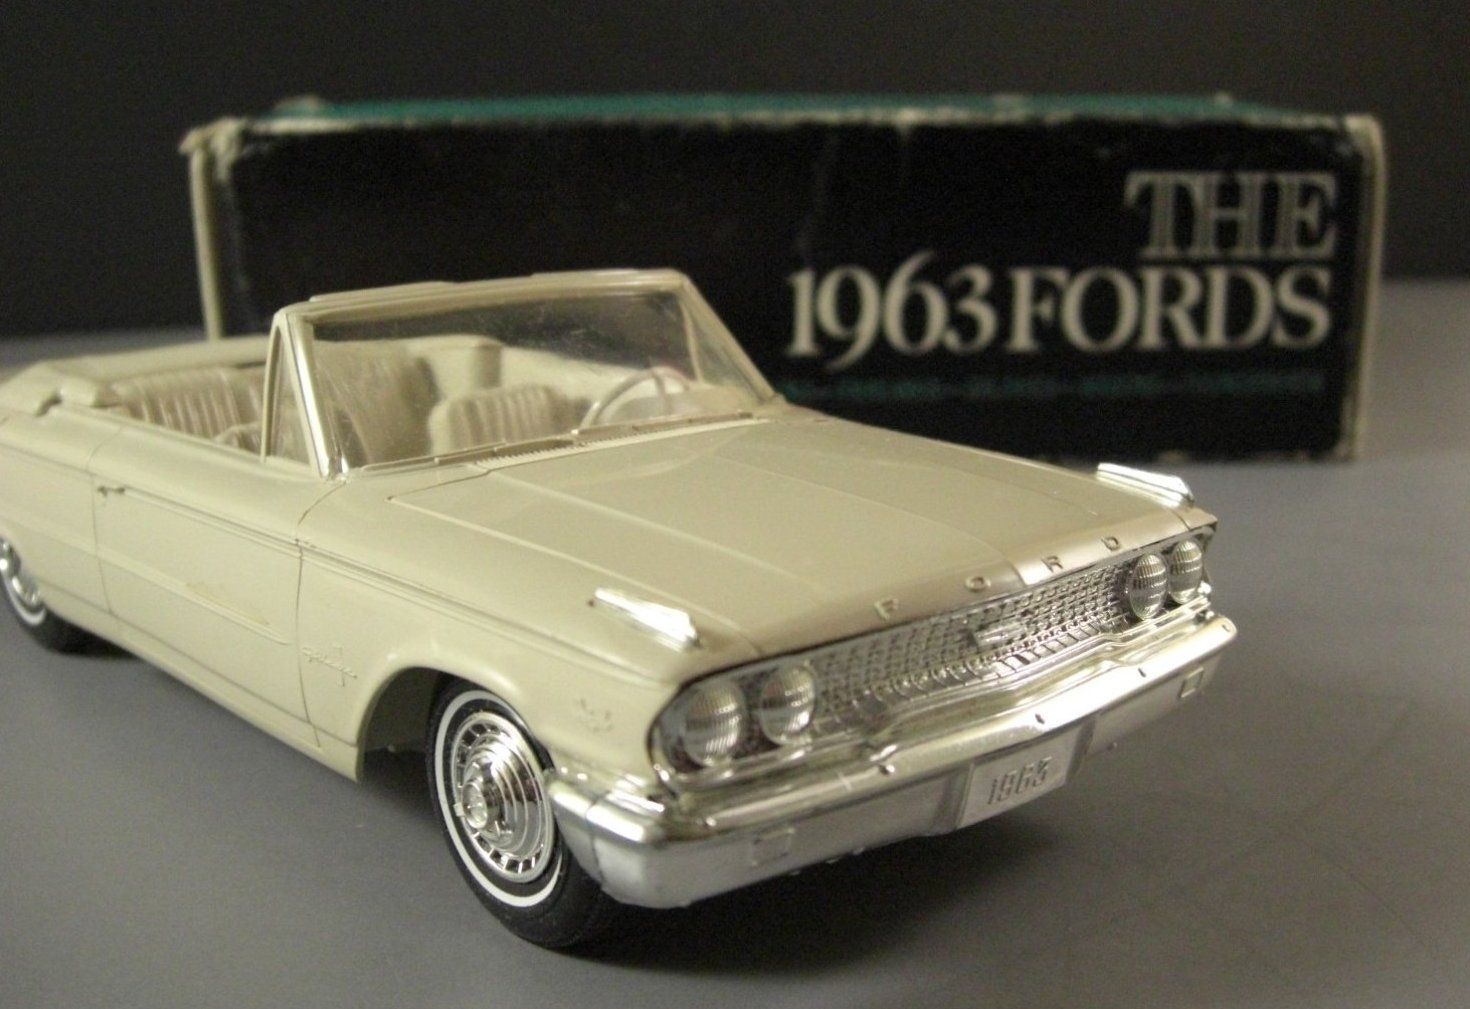 1963 Ford Galaxie Convertible Dealer Promo Model Car